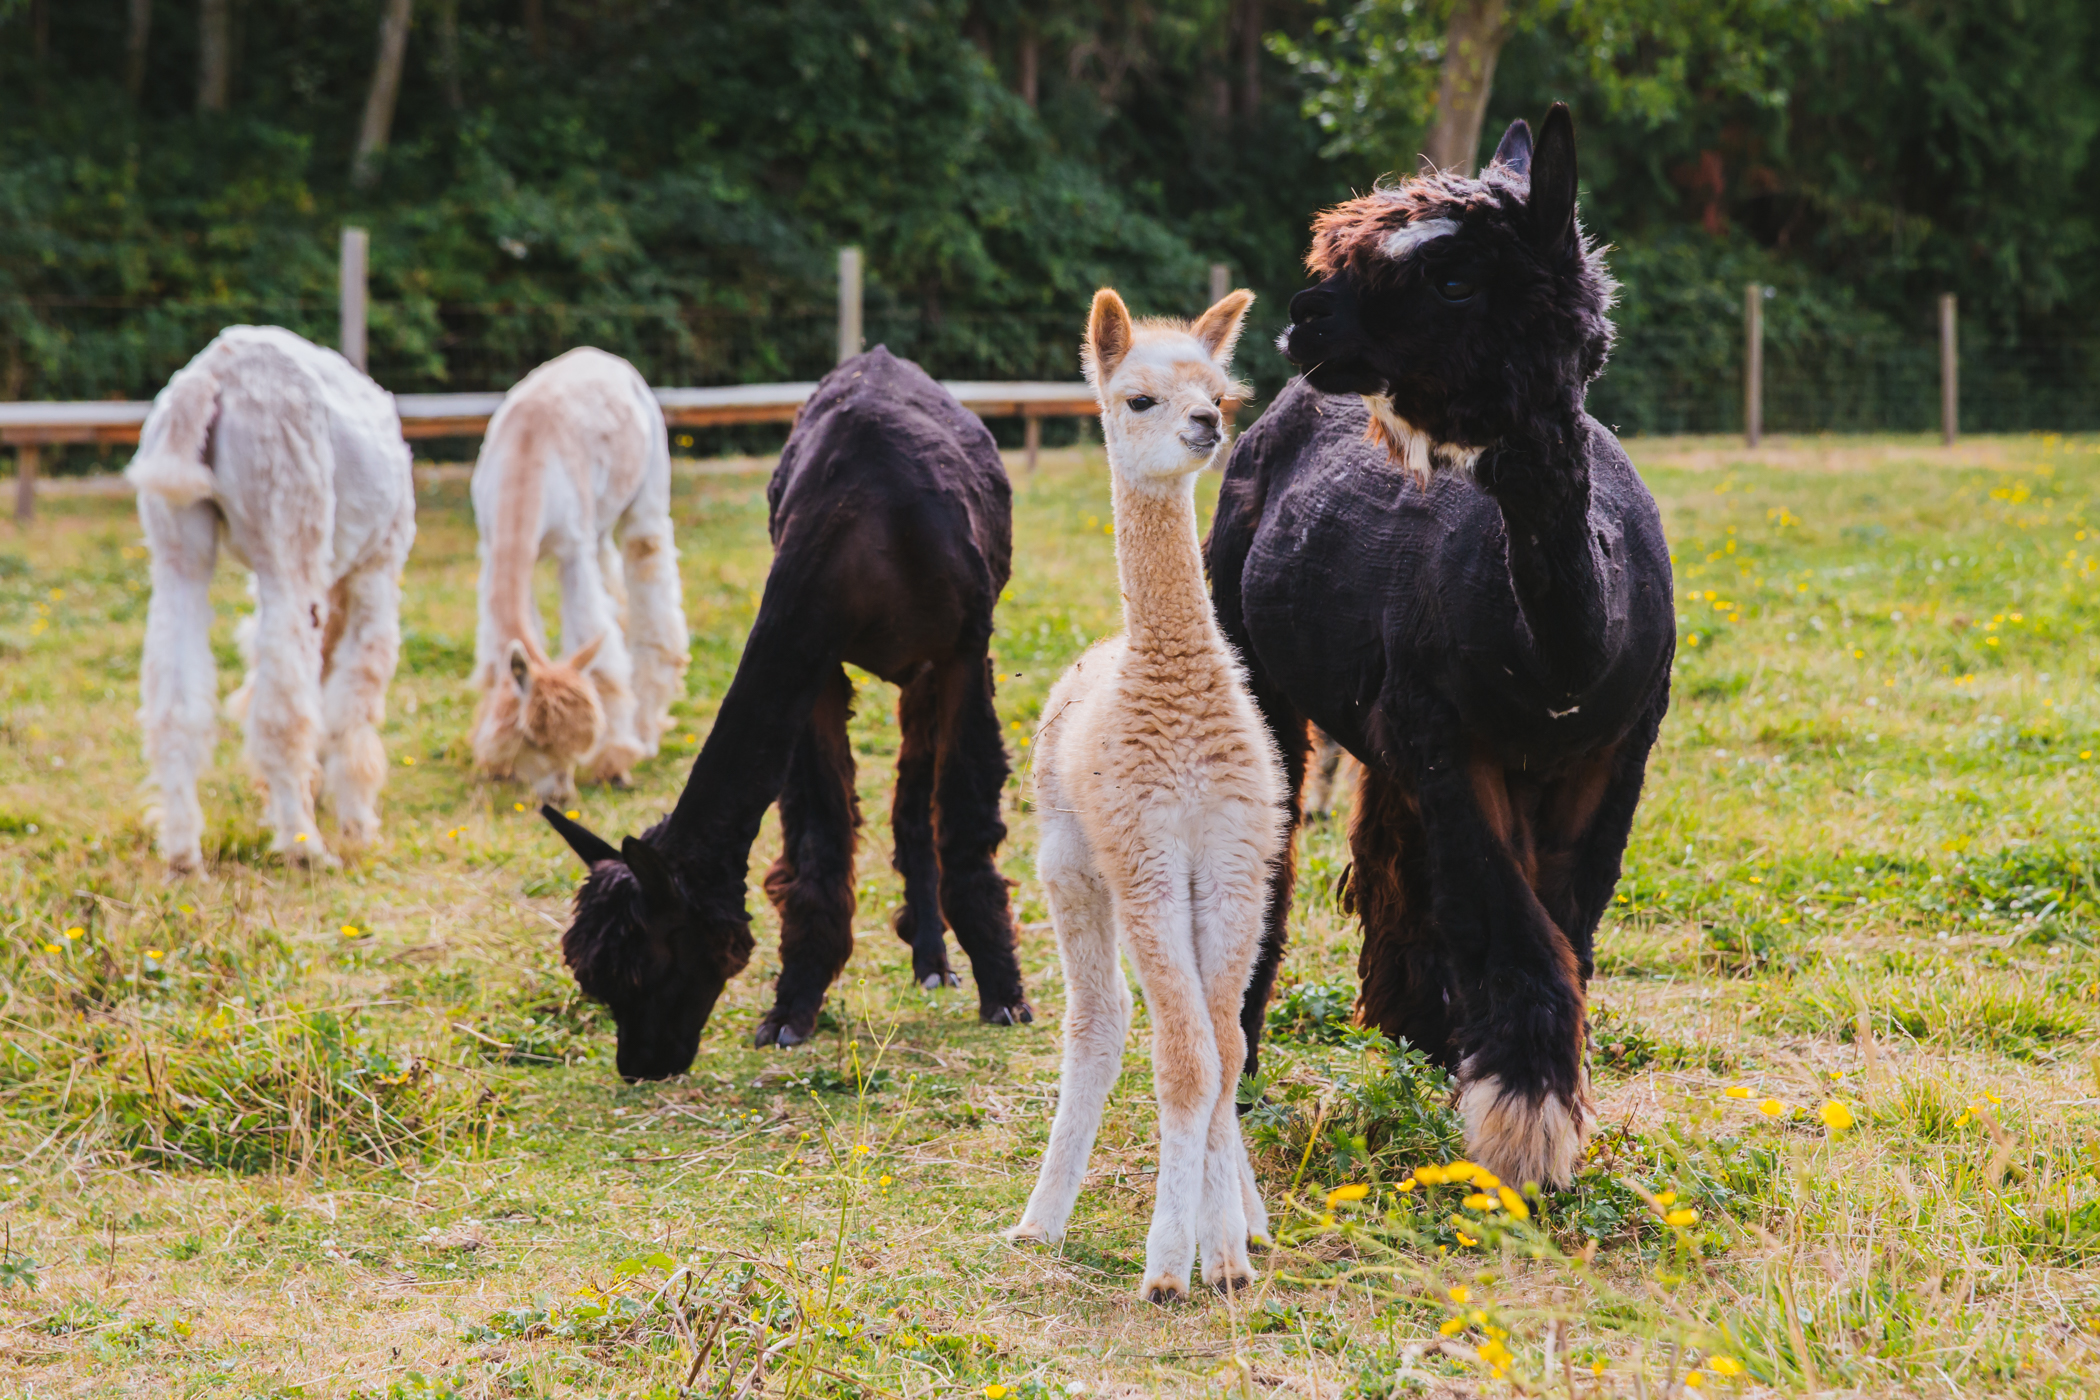 "Solcita and Lana Linda are a RUFFined Spotlight first for us - alpacas! These little huacaya alpaca girls are one month old, born and raised on Camano Island at Alpacas De La Patagonia, which{&nbsp;}<a  href=""http://seattlerefined.com/lifestyle/alpacas-de-la-patagonia"" target=""_blank"" title=""http://seattlerefined.com/lifestyle/alpacas-de-la-patagonia"">we recently profiled</a>. While the duo love milk and playing, they're not so fond of finding their legs...give it time little ones!{&nbsp;}<a  href=""http://seattlerefined.com/ruffined"" target=""_blank"" title=""http://seattlerefined.com/ruffined"">The RUFFined Spotlight</a>{&nbsp;}is a weekly profile of local pets living and loving life in the PNW. If you or someone you know has a pet you'd like featured, email us at{&nbsp;}<a  href=""mailto:hello@seattlerefined.com"" target=""_blank"" title=""mailto:hello@seattlerefined.com"">hello@seattlerefined.com</a>, and your furbaby could be the next spotlighted! (Image: Sunita Martini / Seattle Refined)"